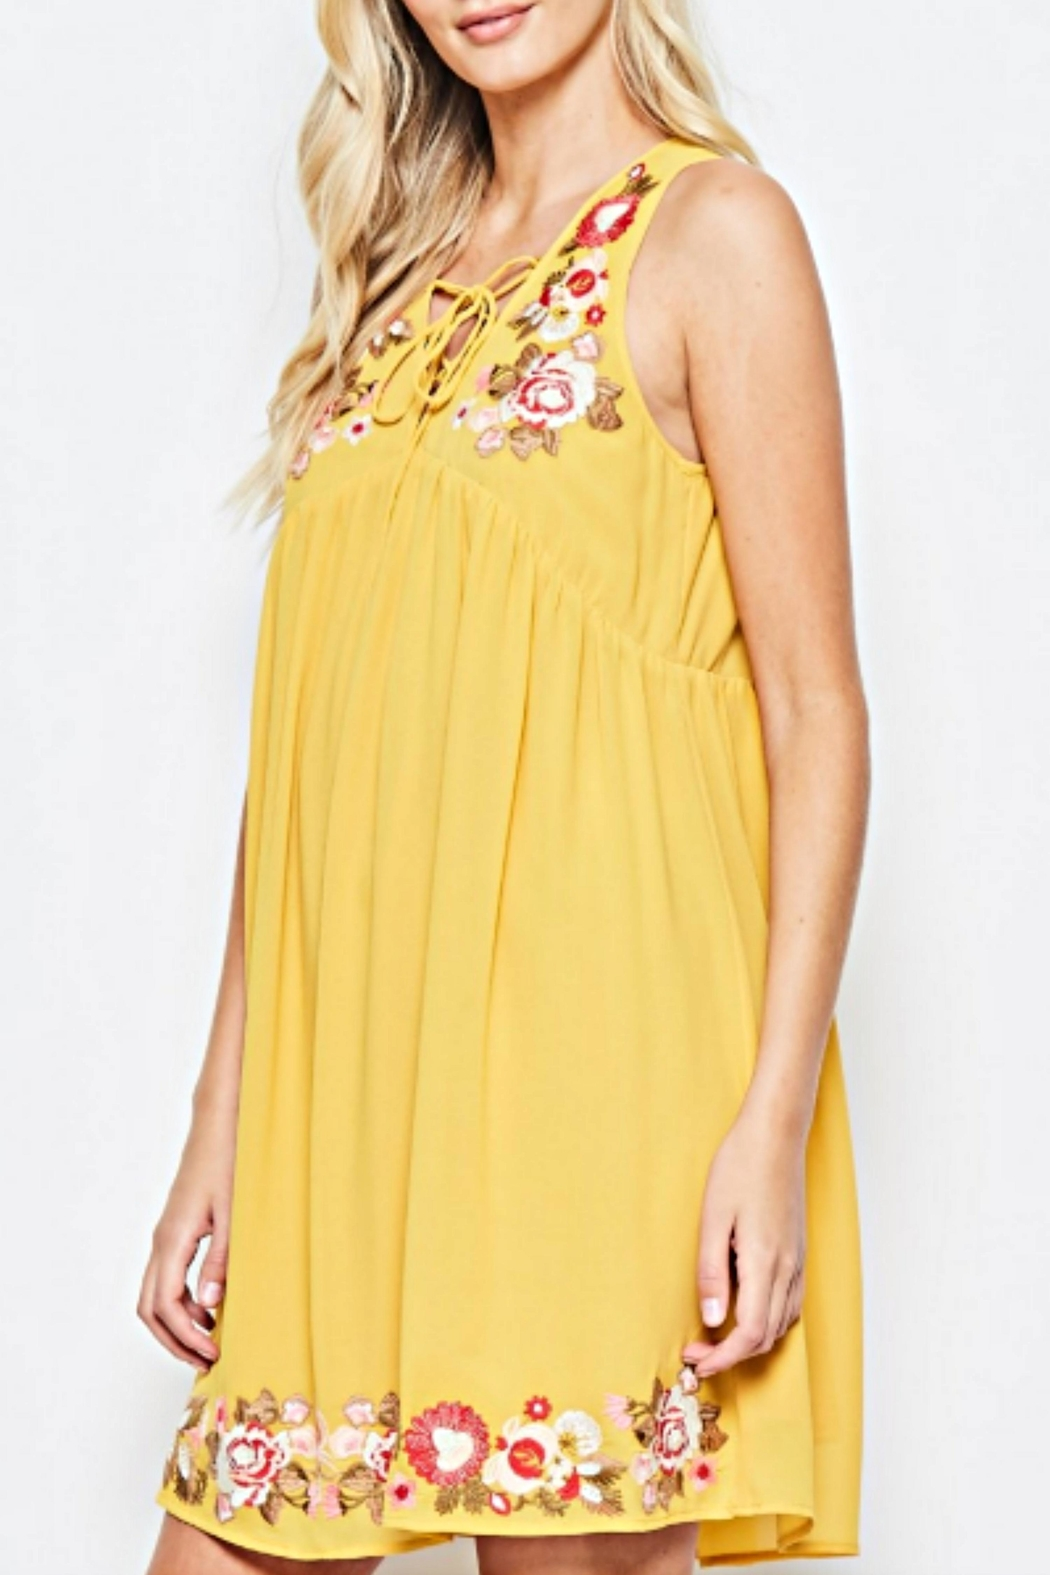 Andree by Unit Embroidered Golden Sundress - Main Image